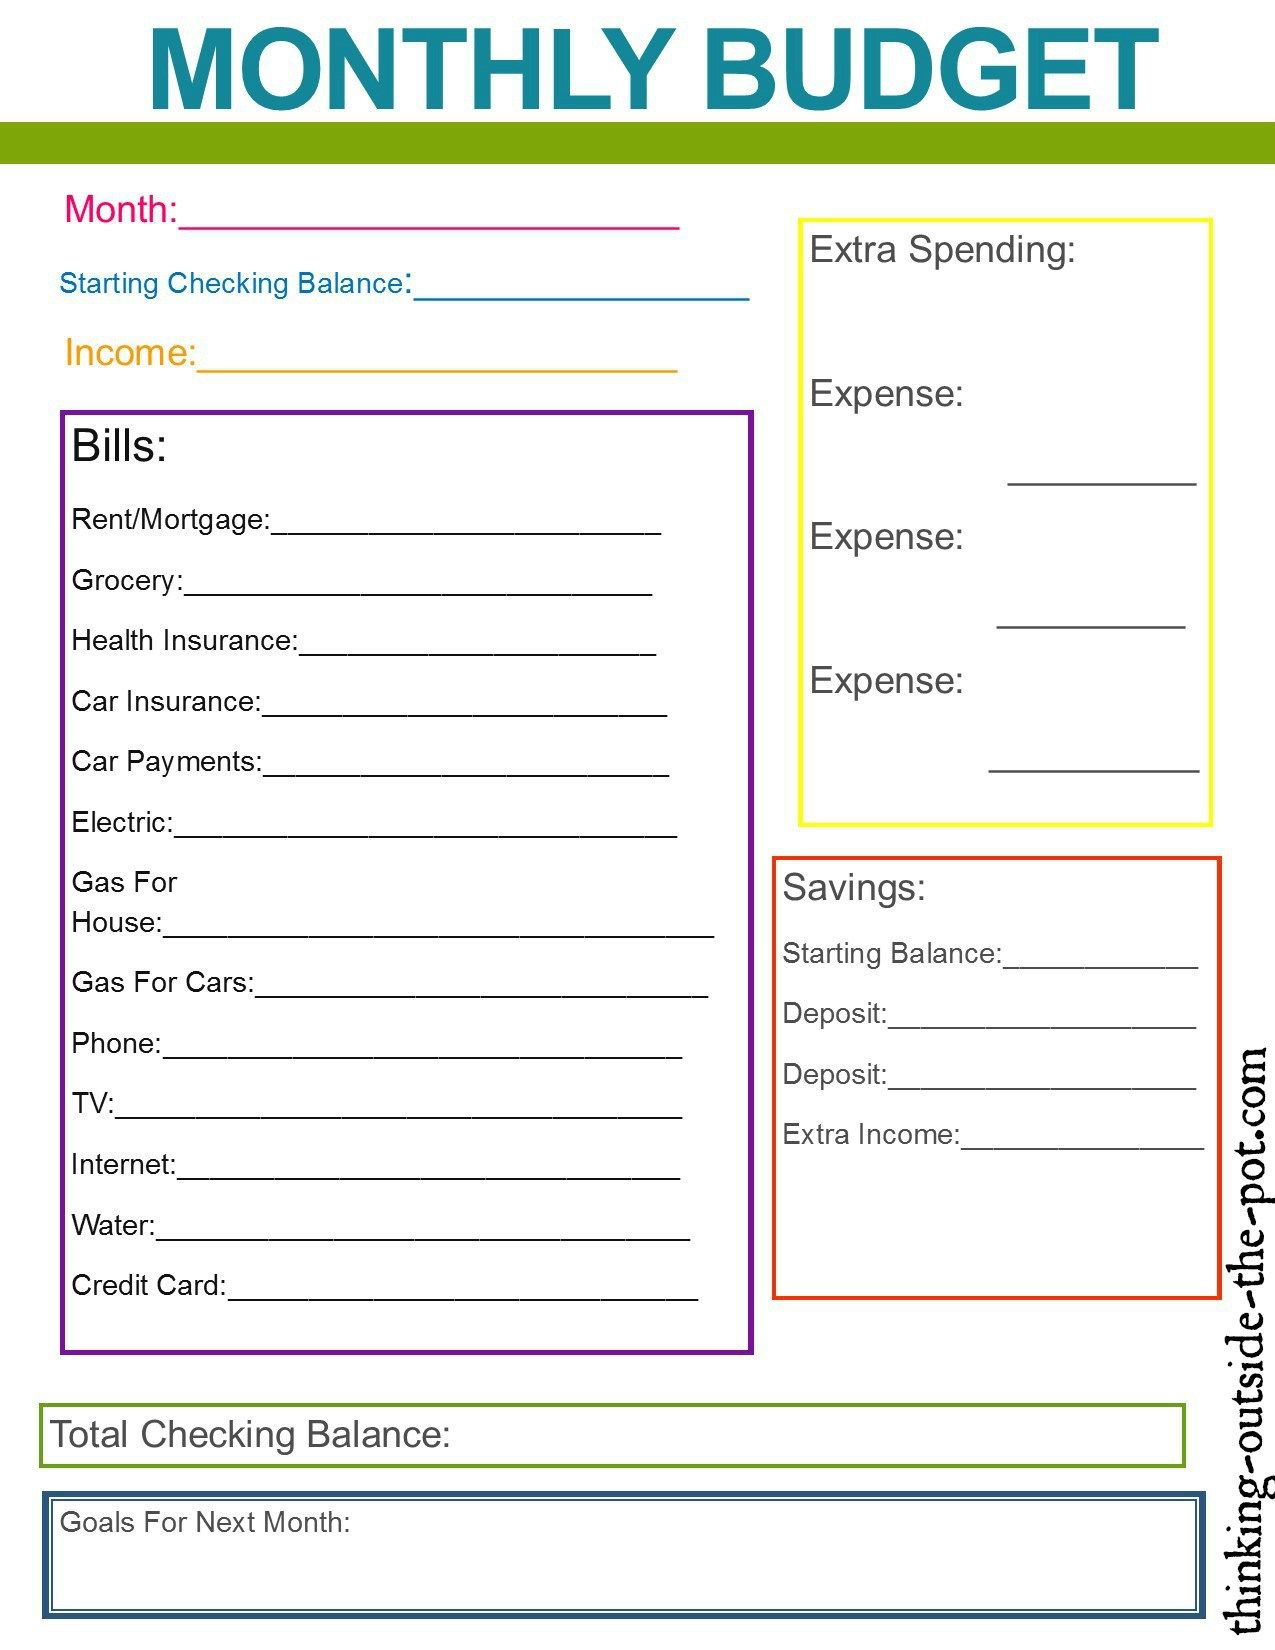 Worksheets Family Budget Worksheets family budget template for excel 2007 or later ipad word osaka